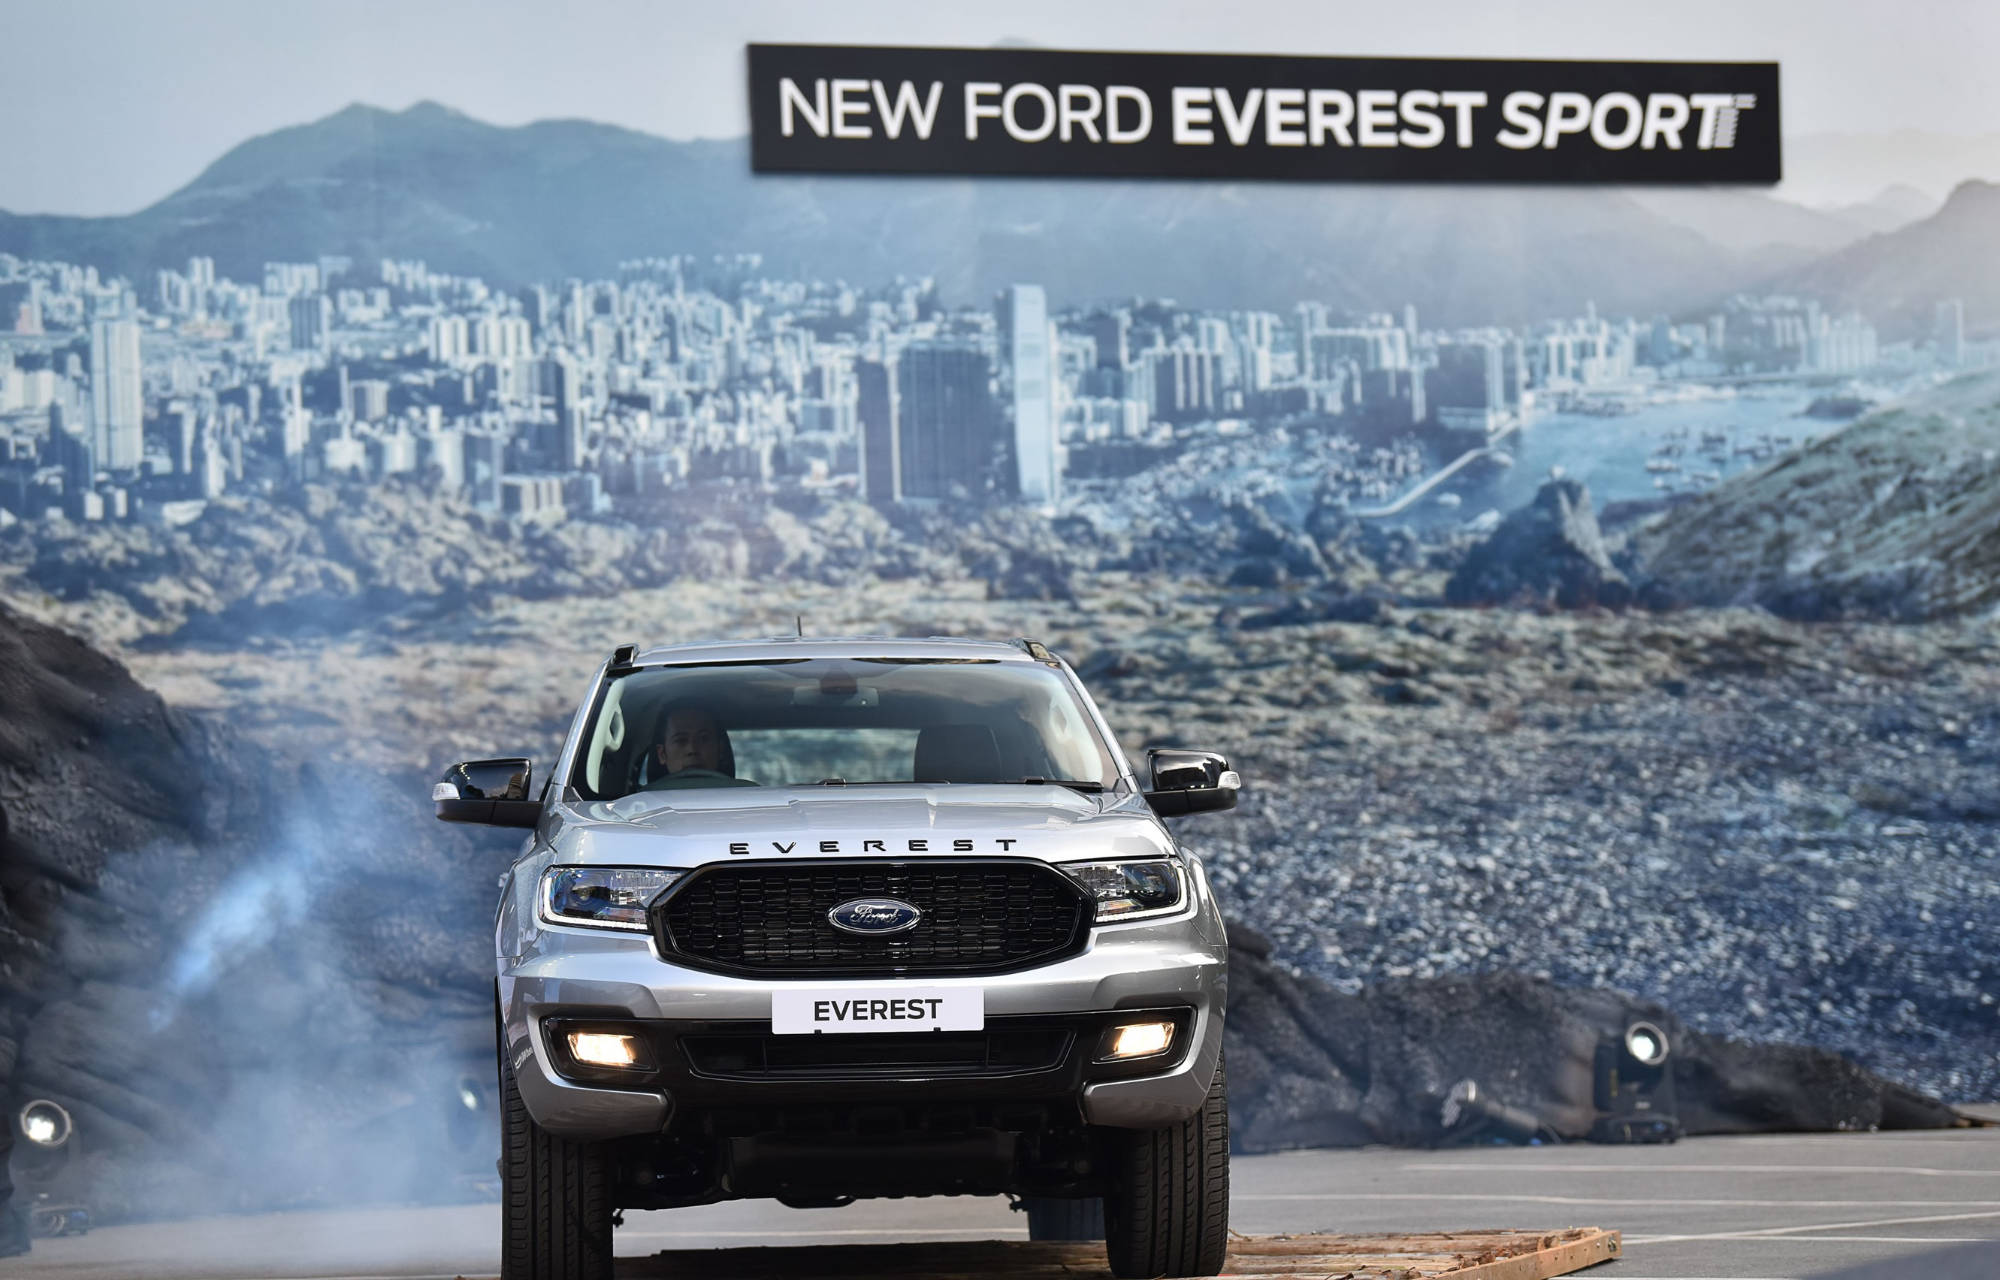 NEW FORD EVEREST SPORT